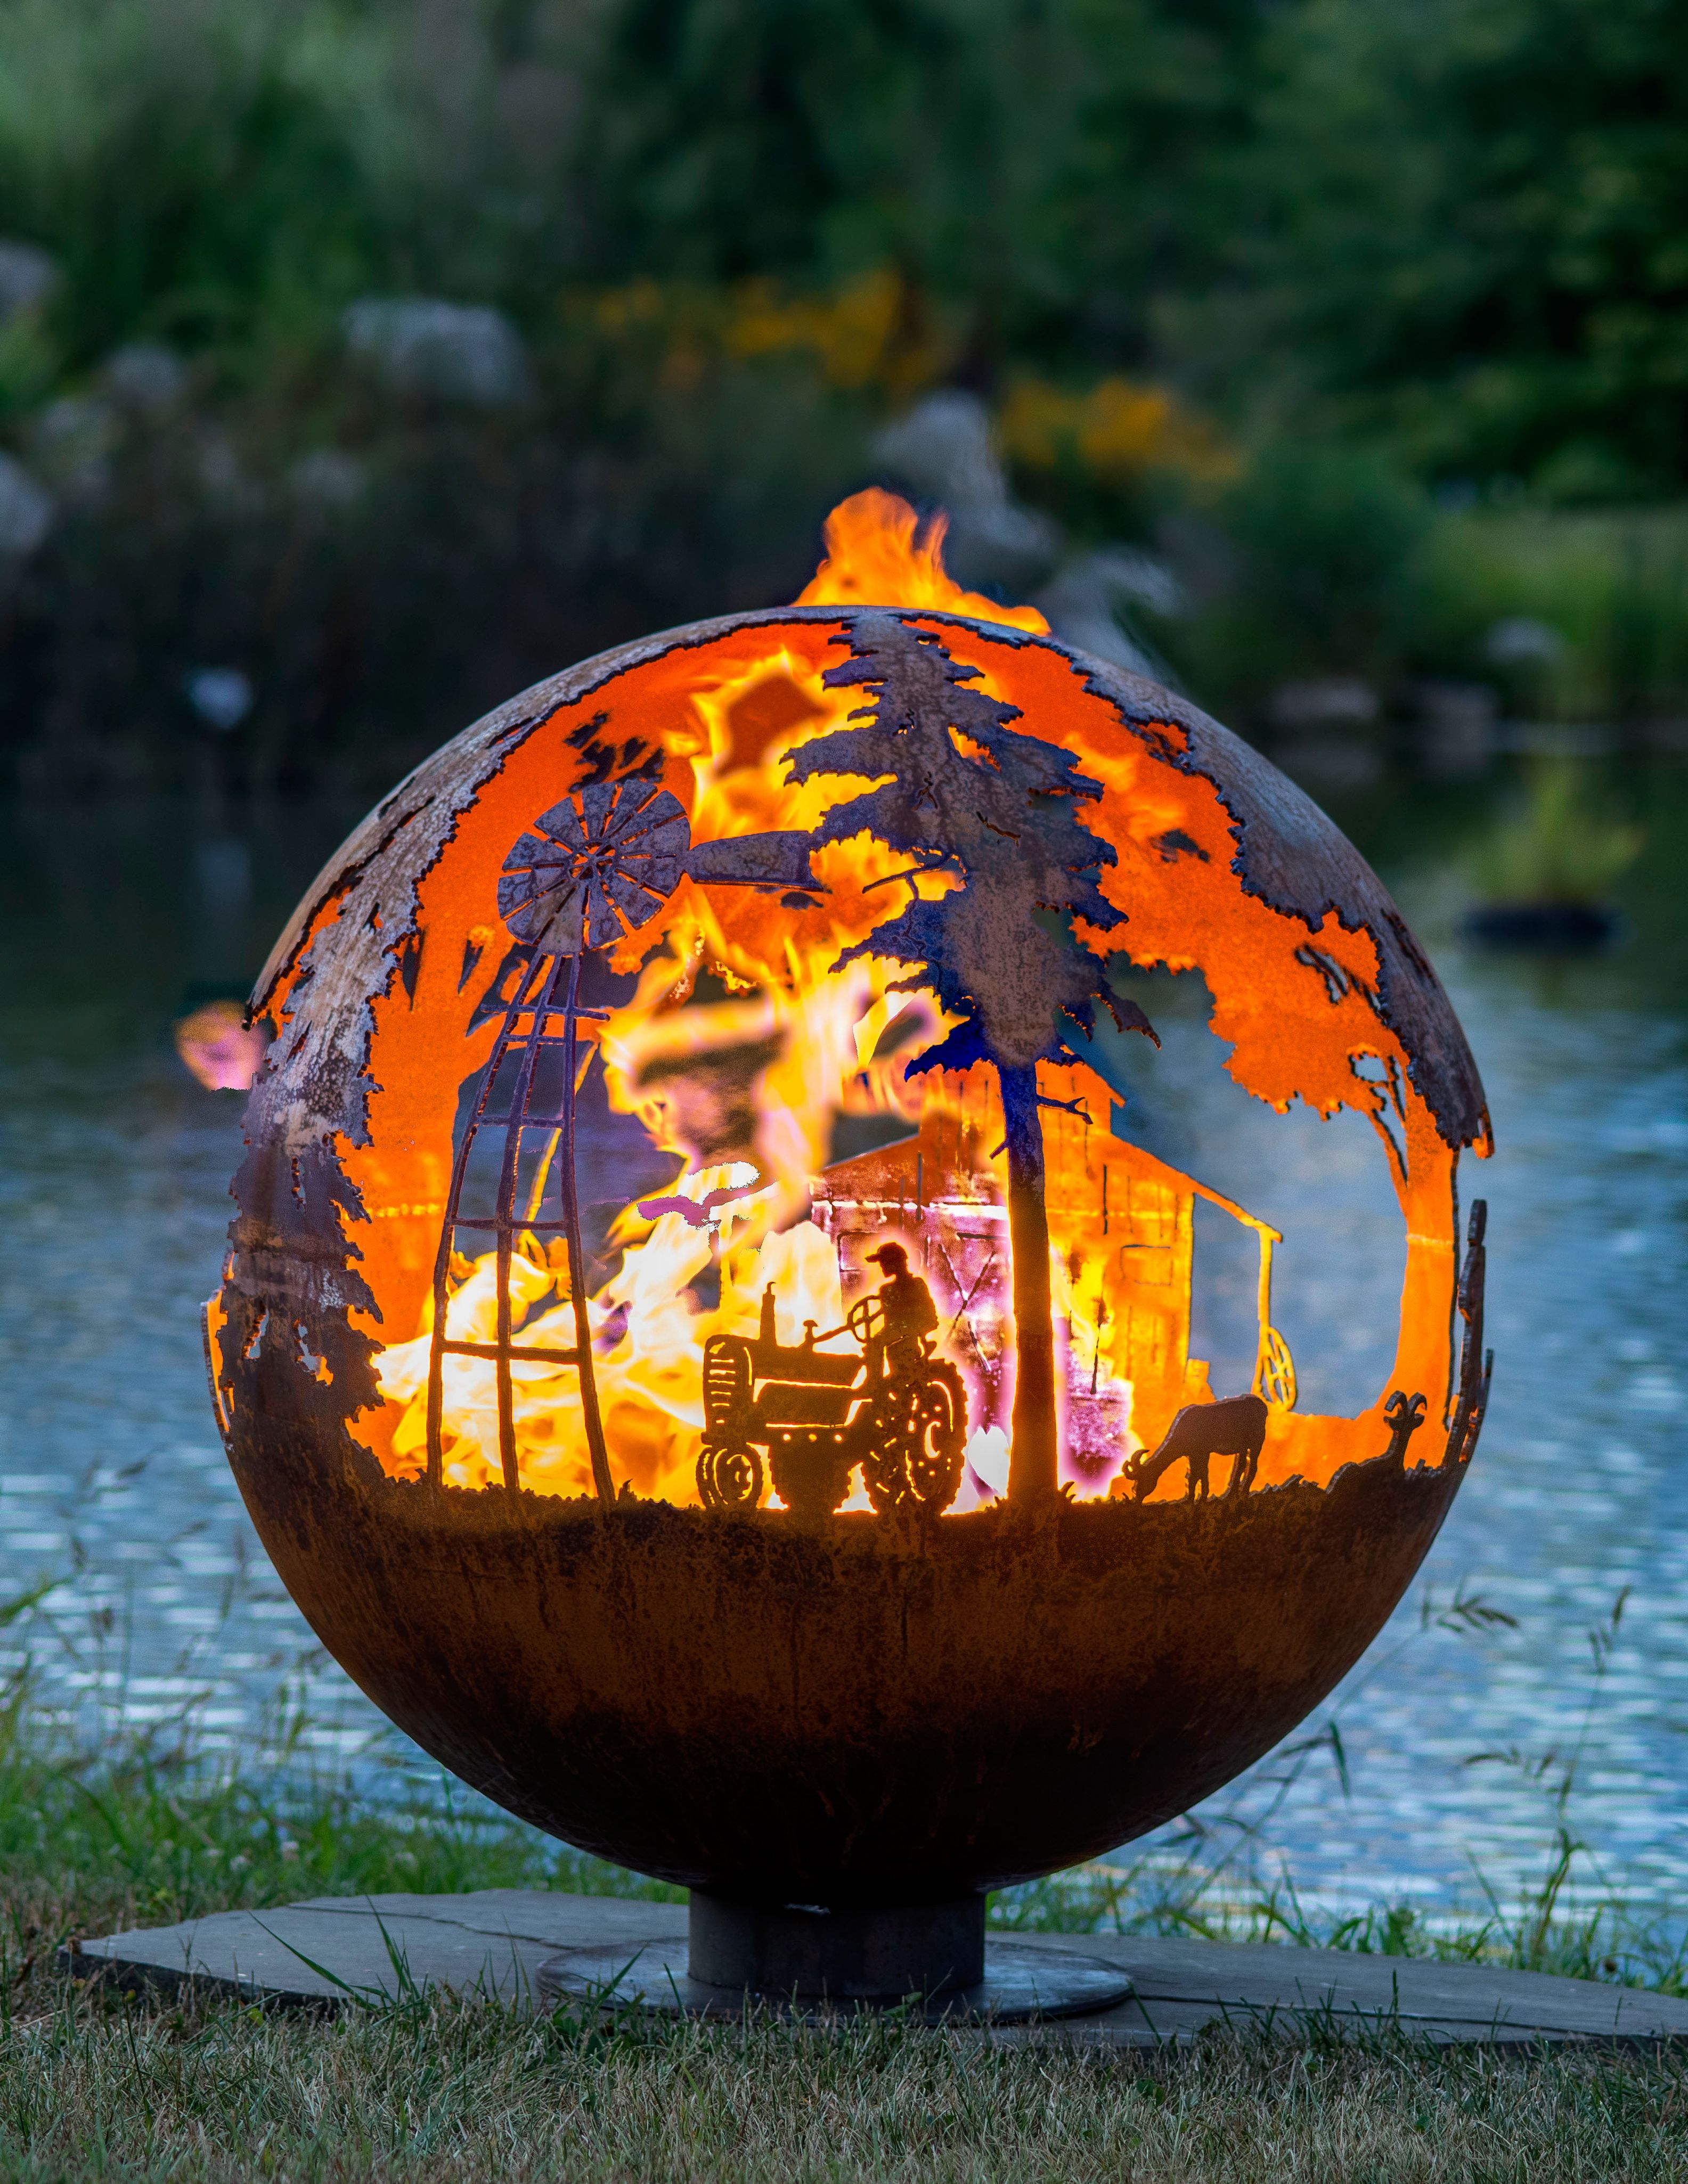 appel crisp farms 37 fire pit sphere made in the usa with